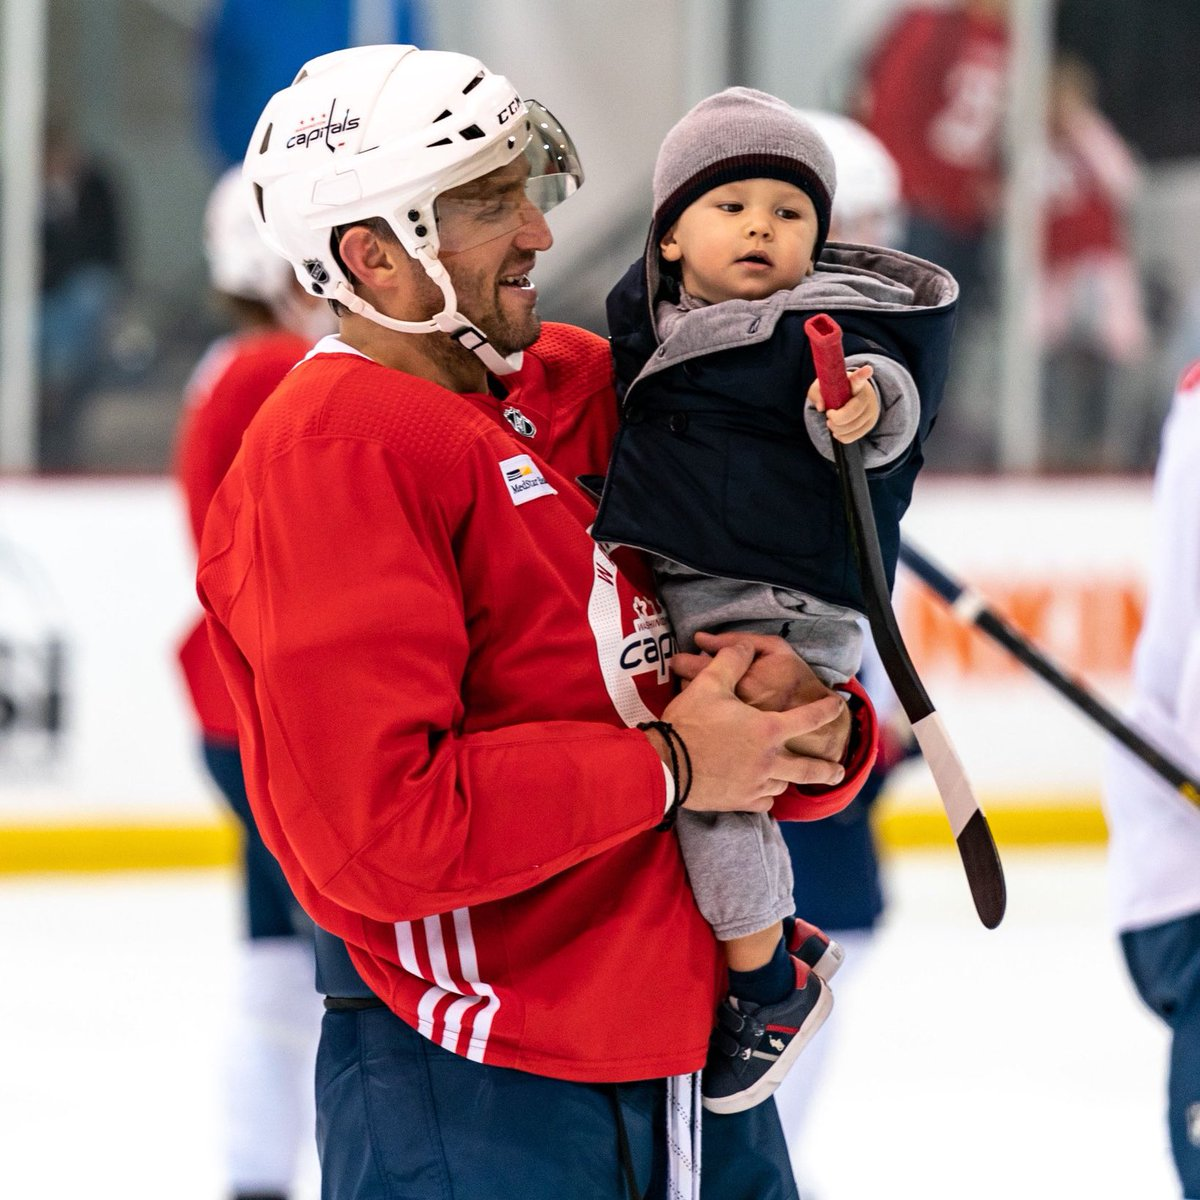 Baby Ovi... look at that stance. The power in this kid. He can already shoot harder than us, what a monster. <br>http://pic.twitter.com/bXMBYeDO2q